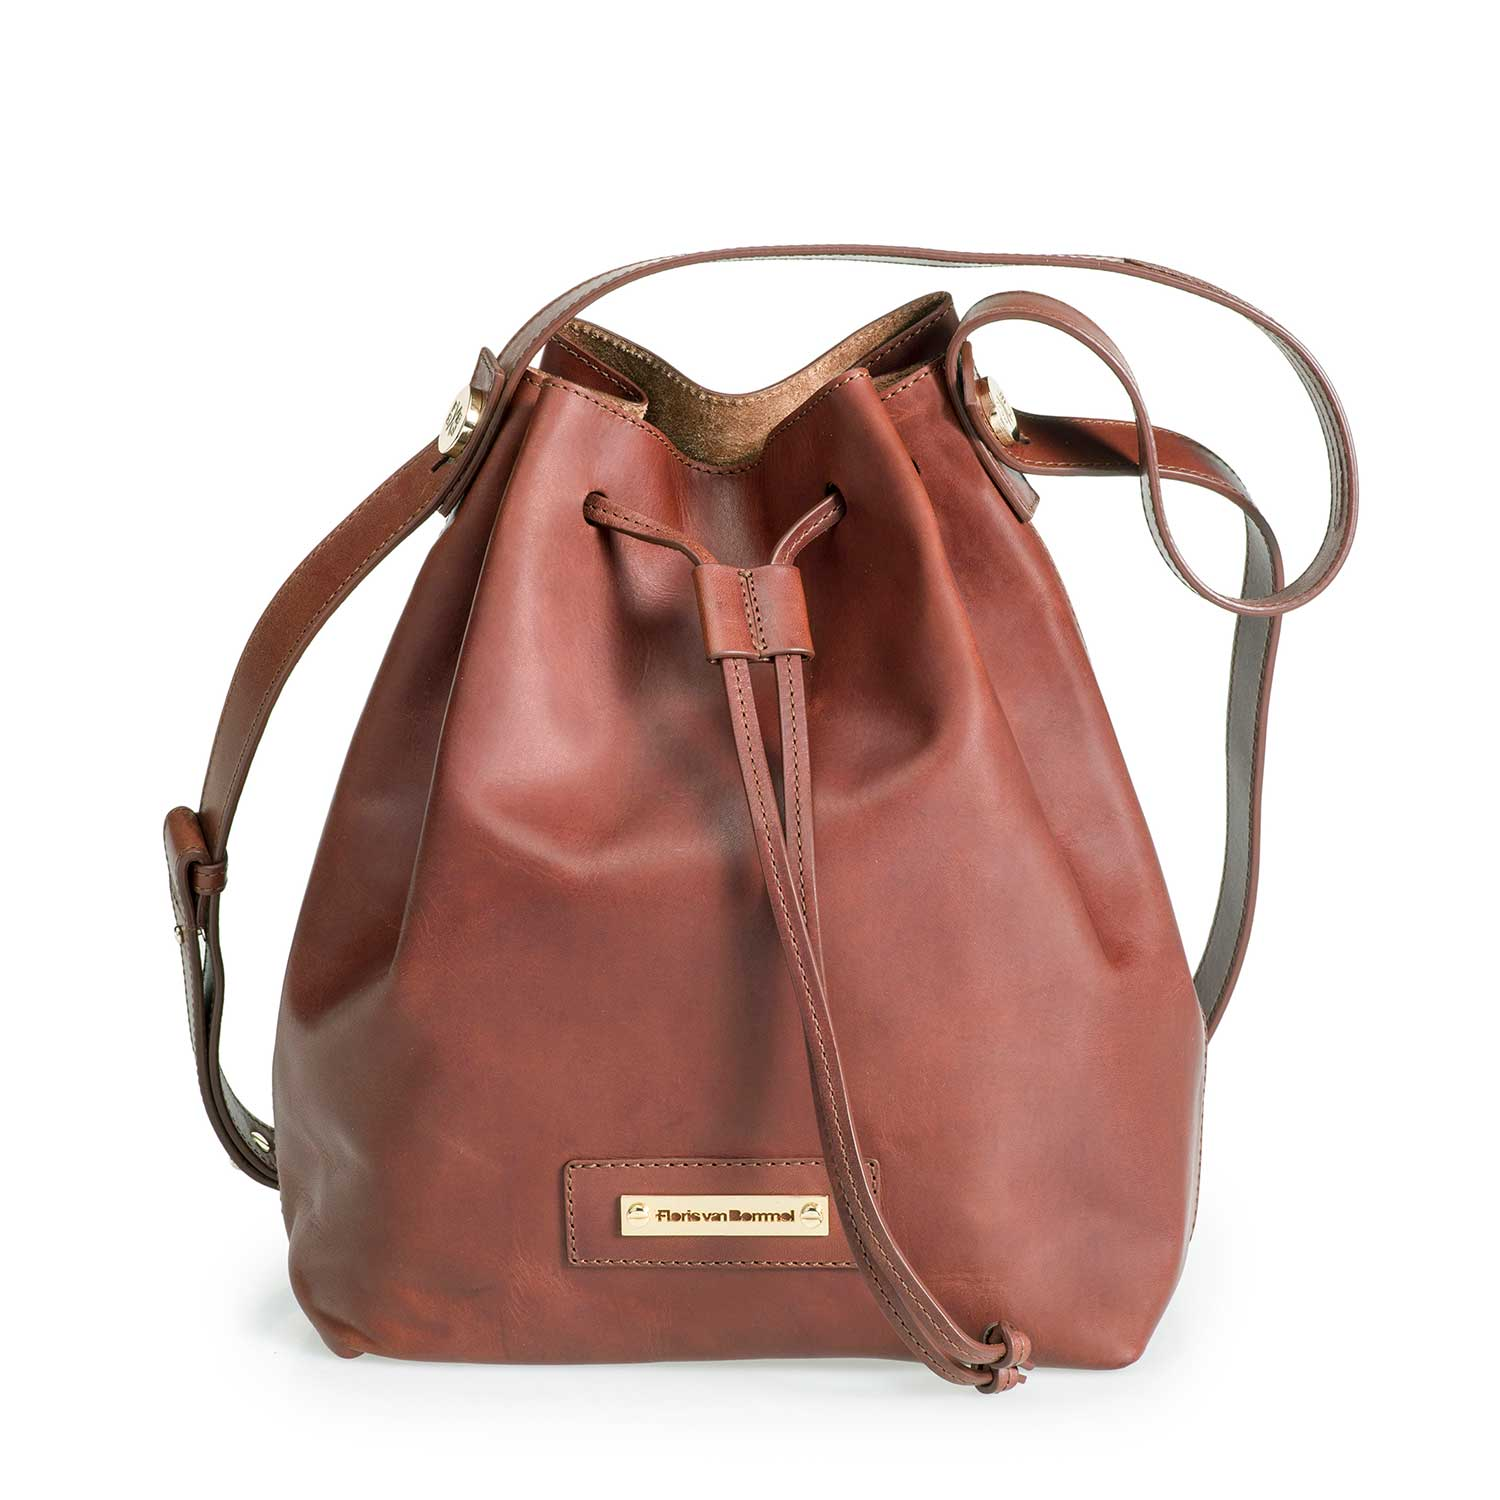 89007/01 - Brown leather bucket bag